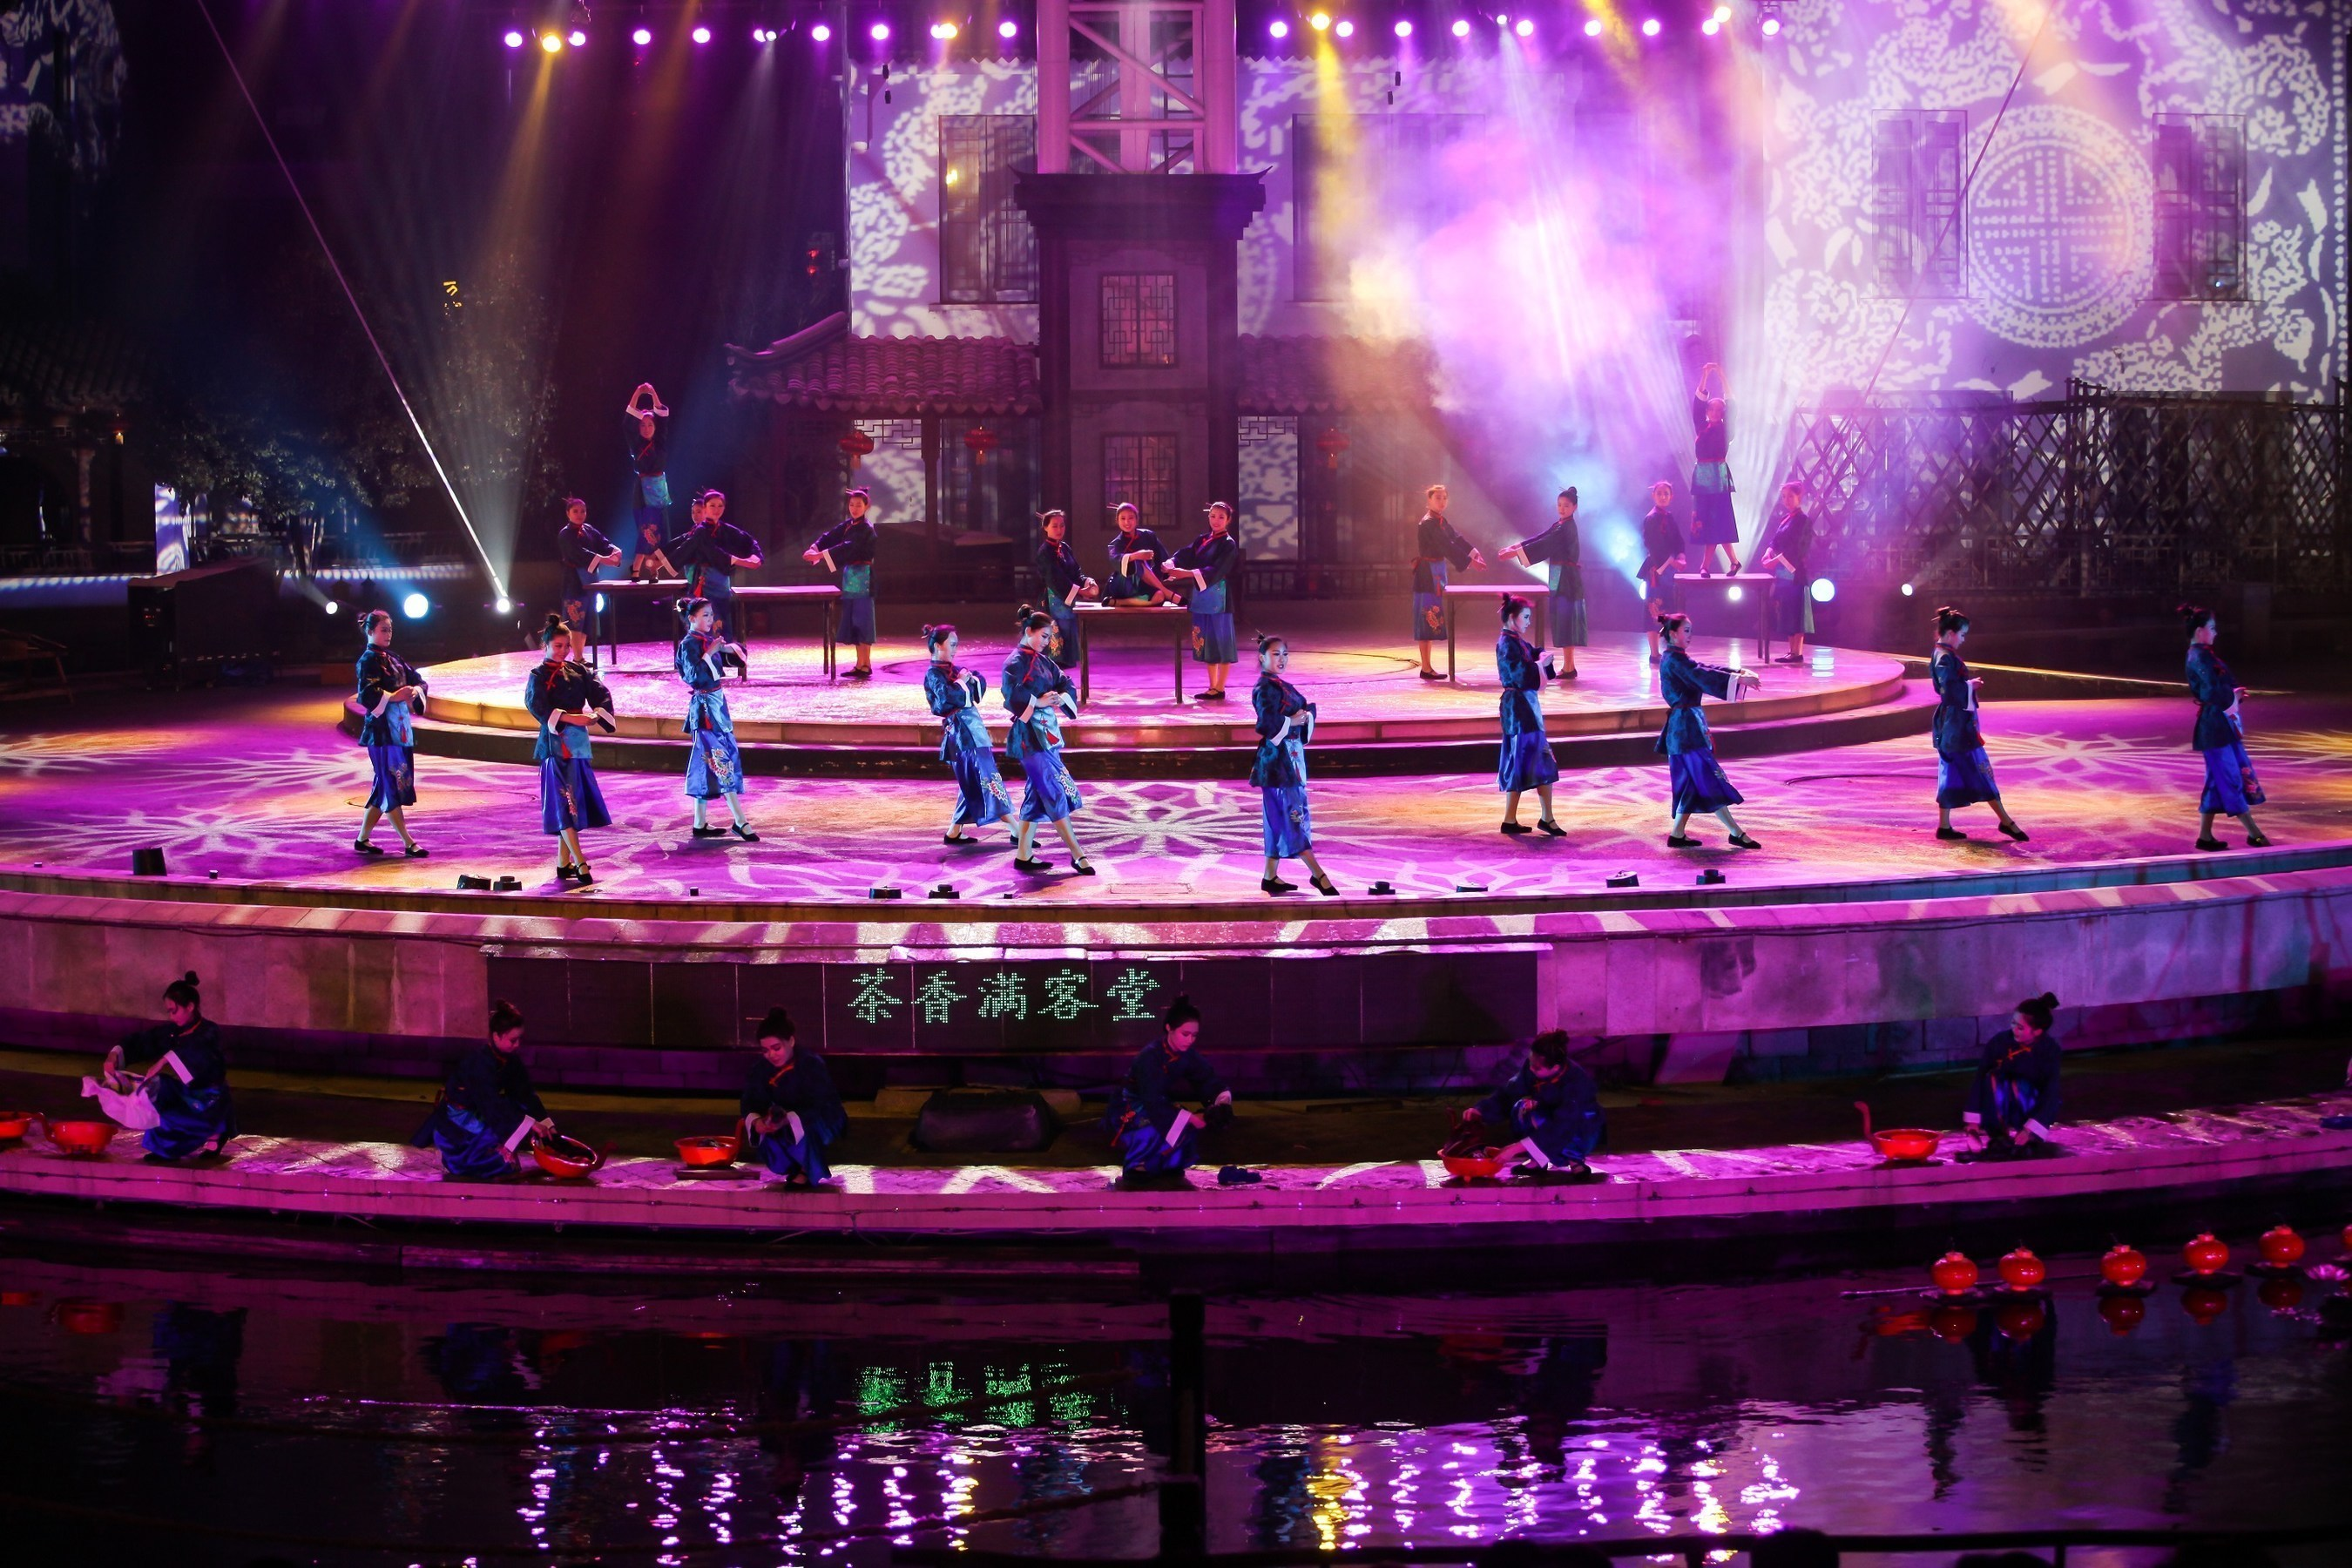 Tourists Immersed in the Live Performance 'Zhouzhuang in Four Seasons' in April with Local Residents